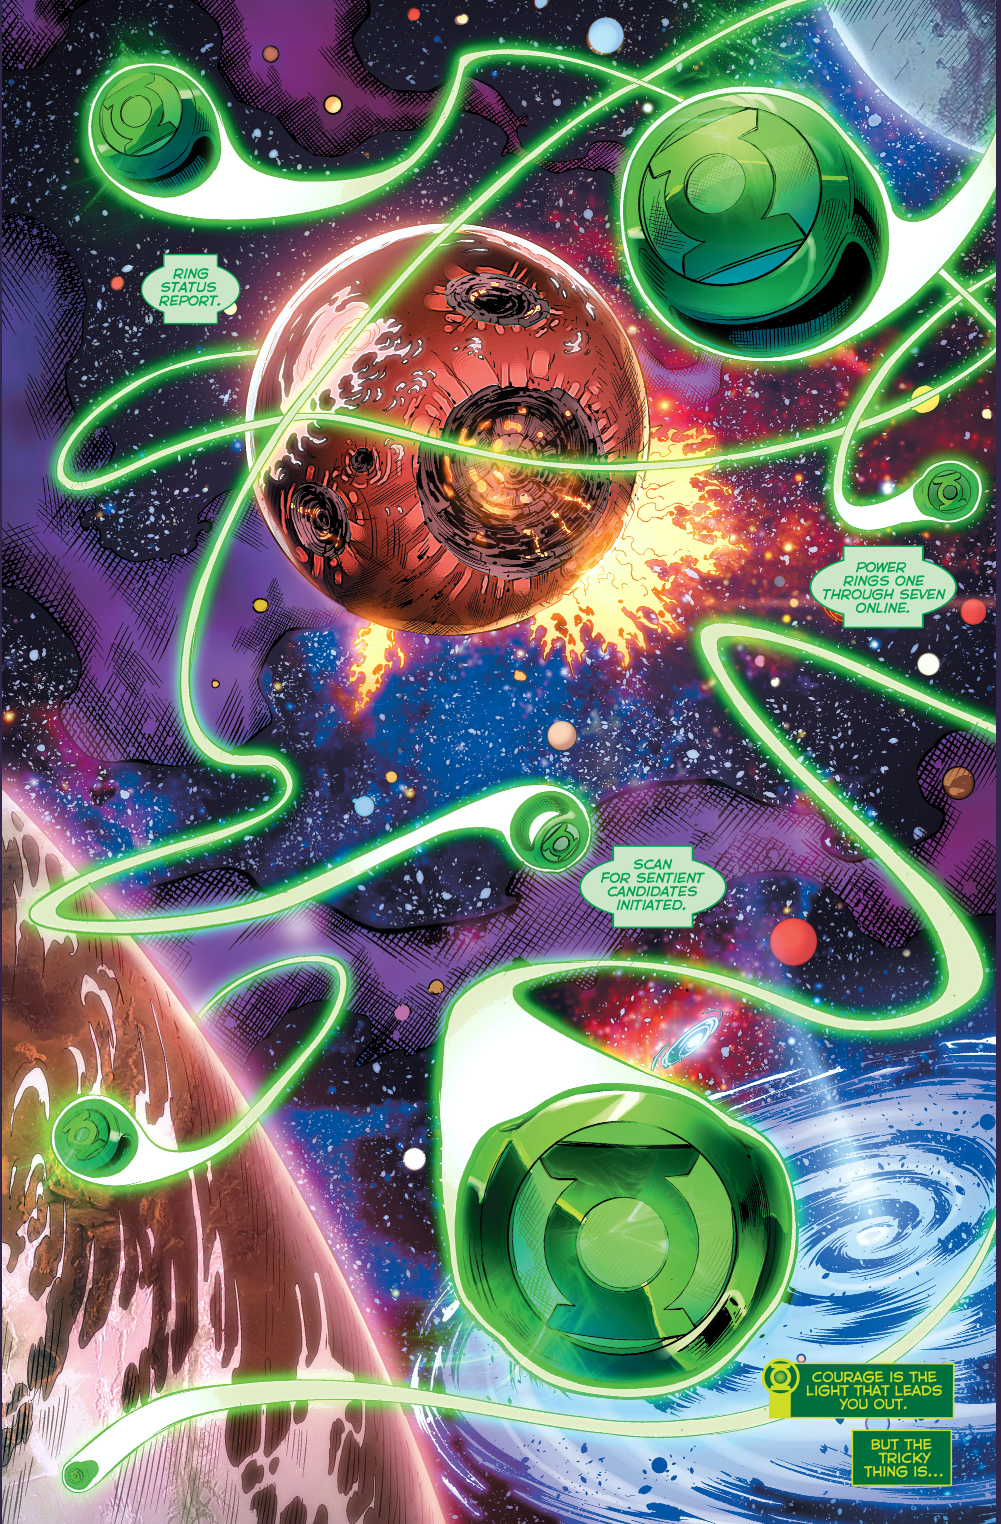 rami-gives-the-green-lantern-rings-to-the-guardians